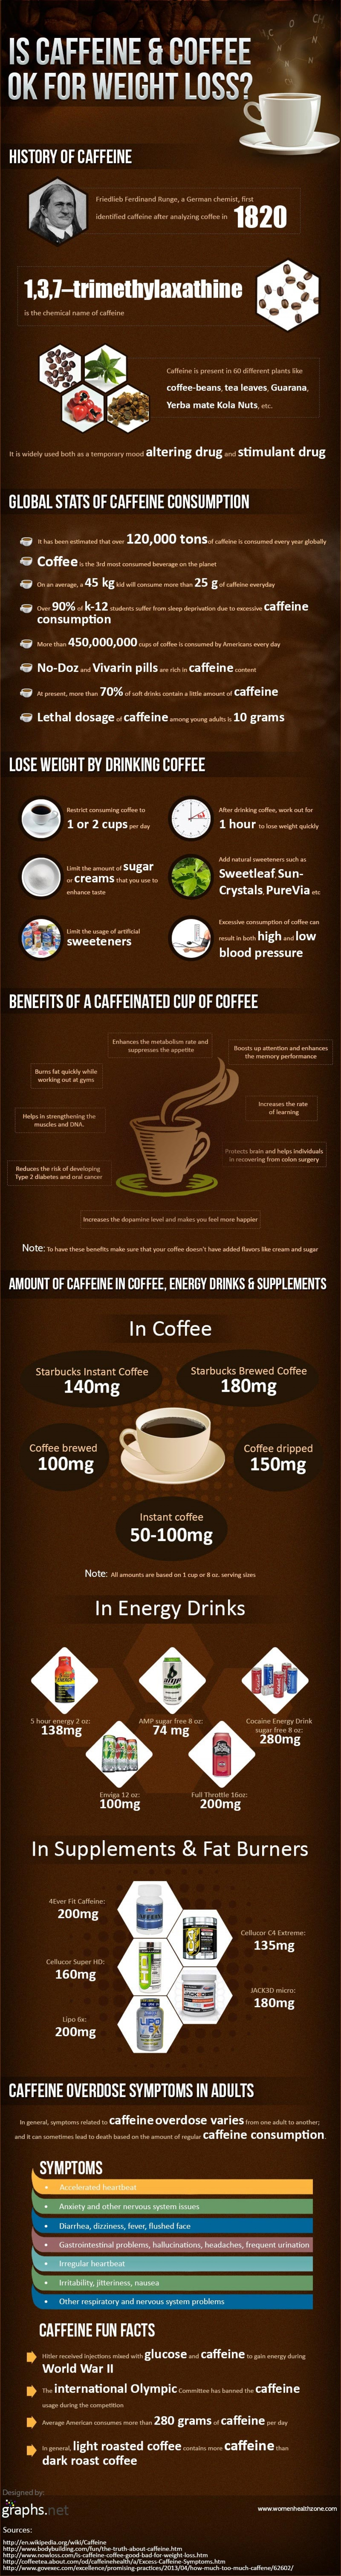 What are caffeine Overdose Symptoms In Adults. Infographic